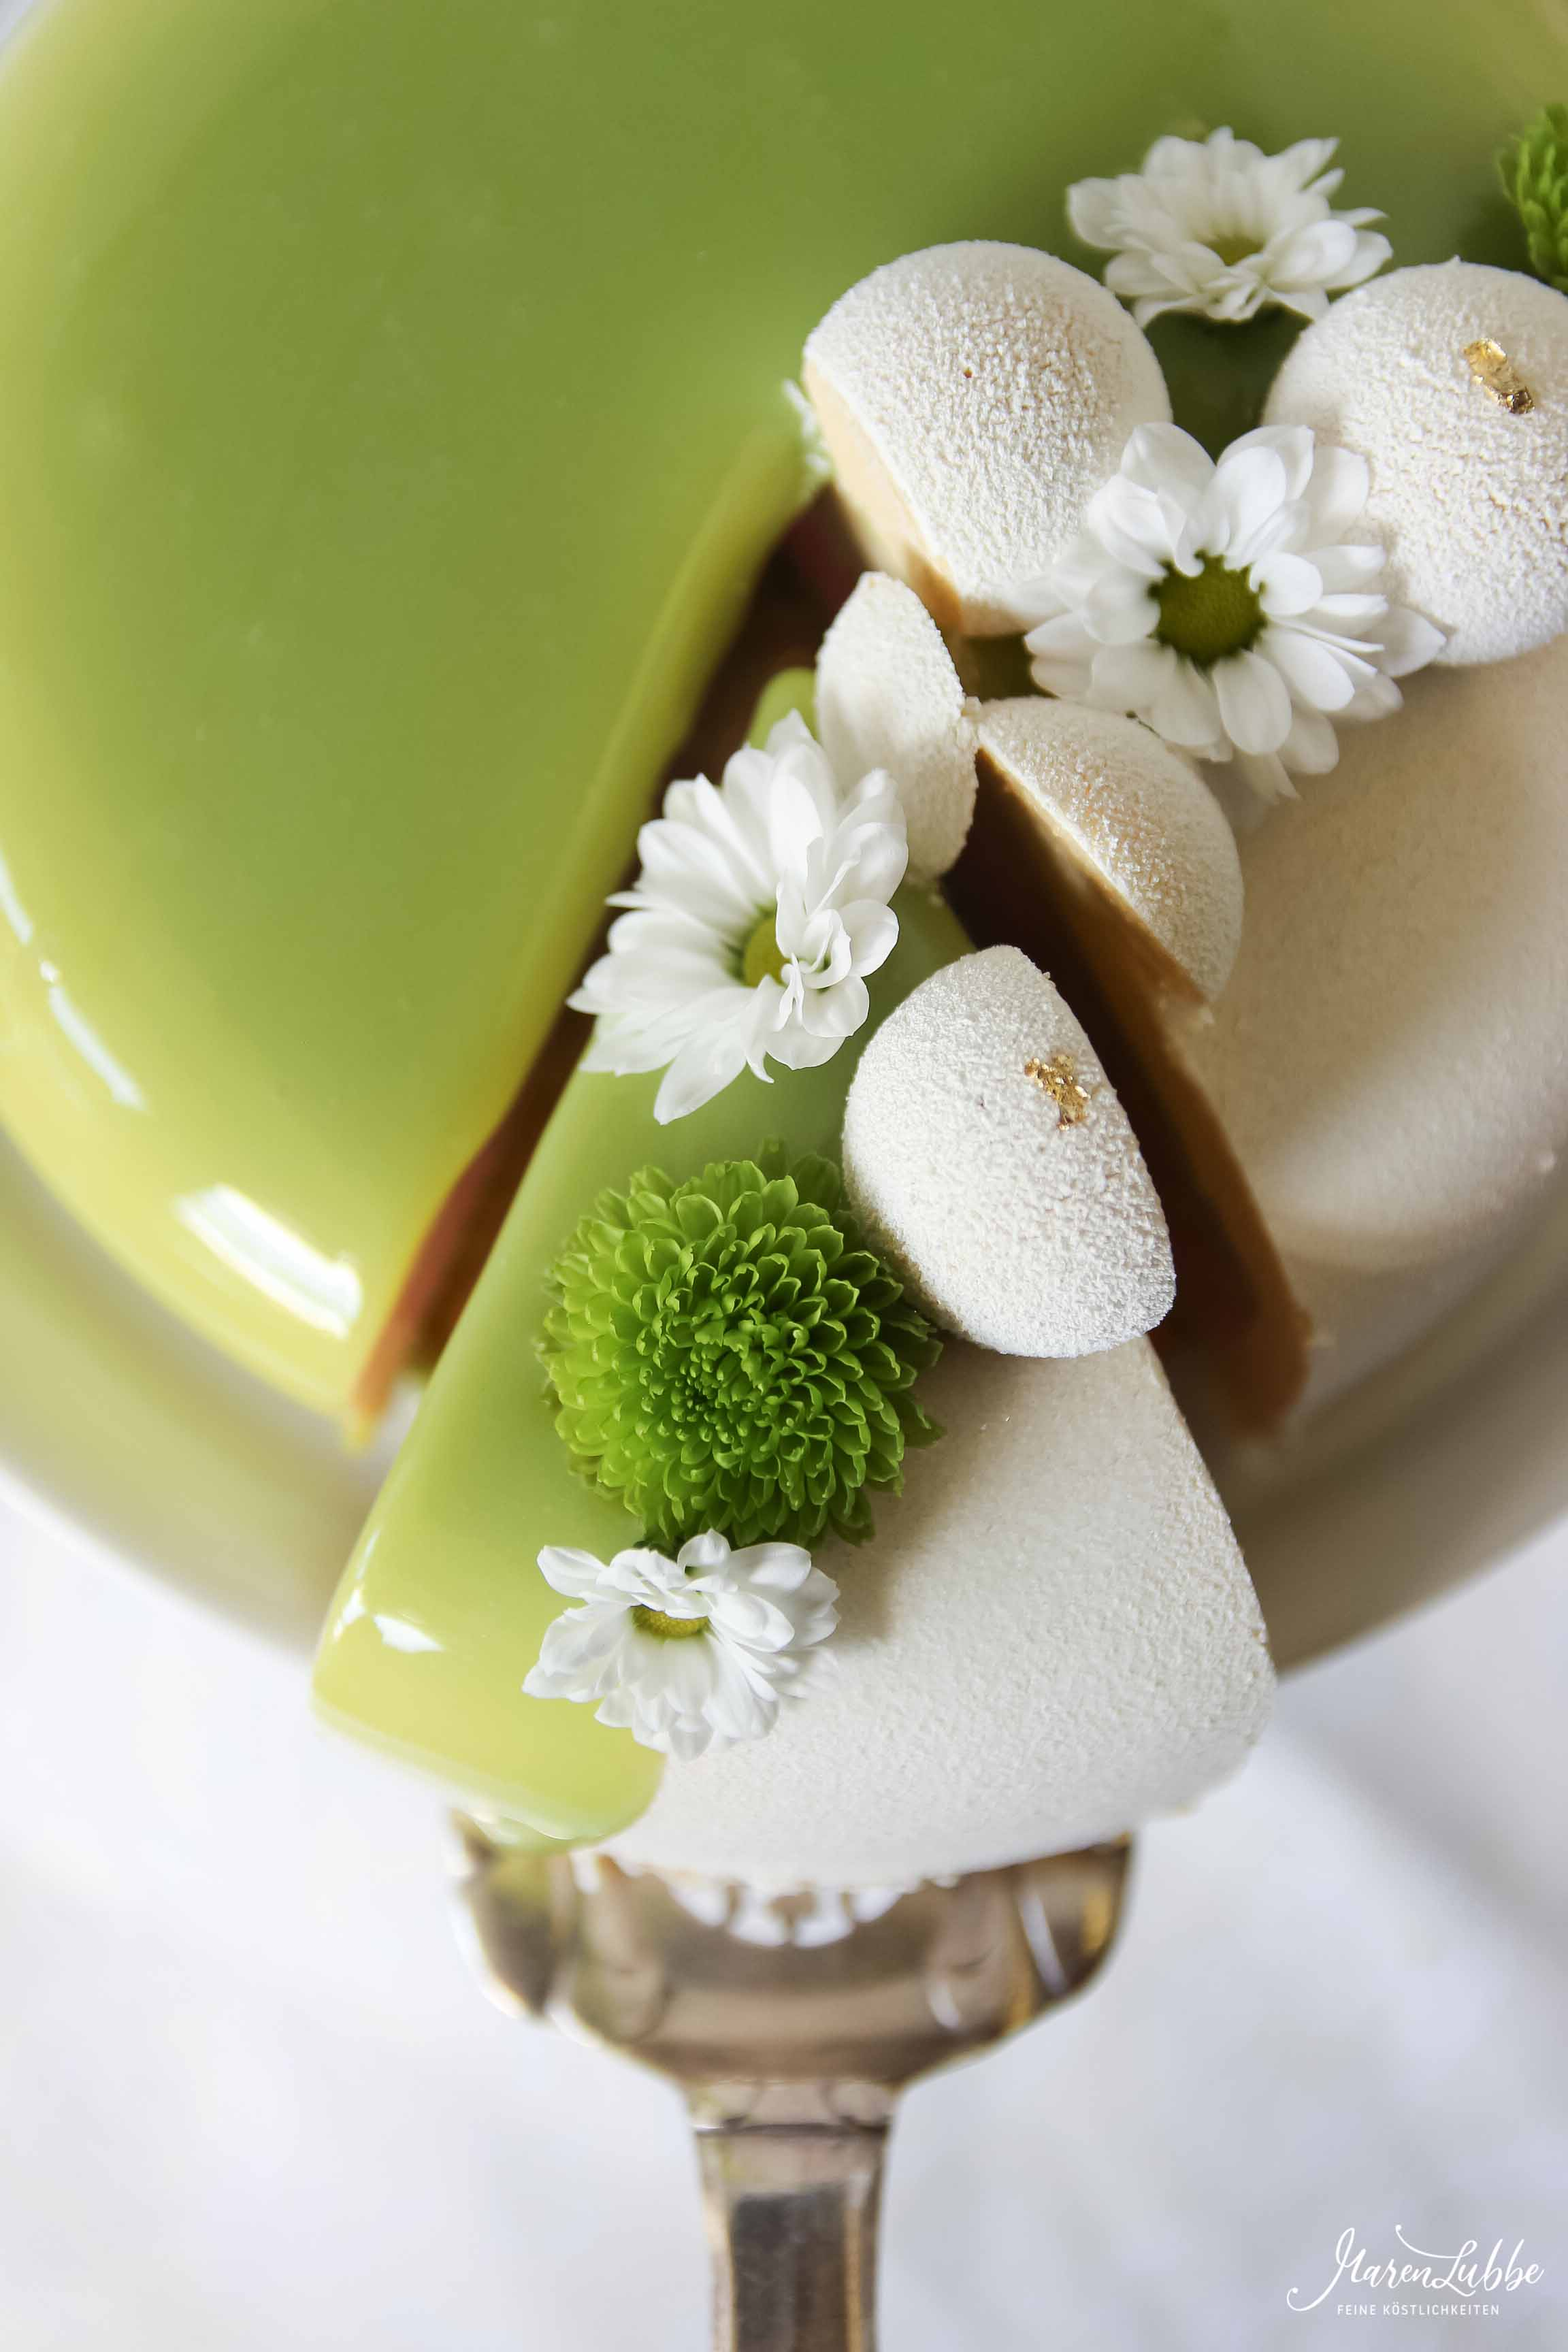 Green Apple - Apfelmousse Torte